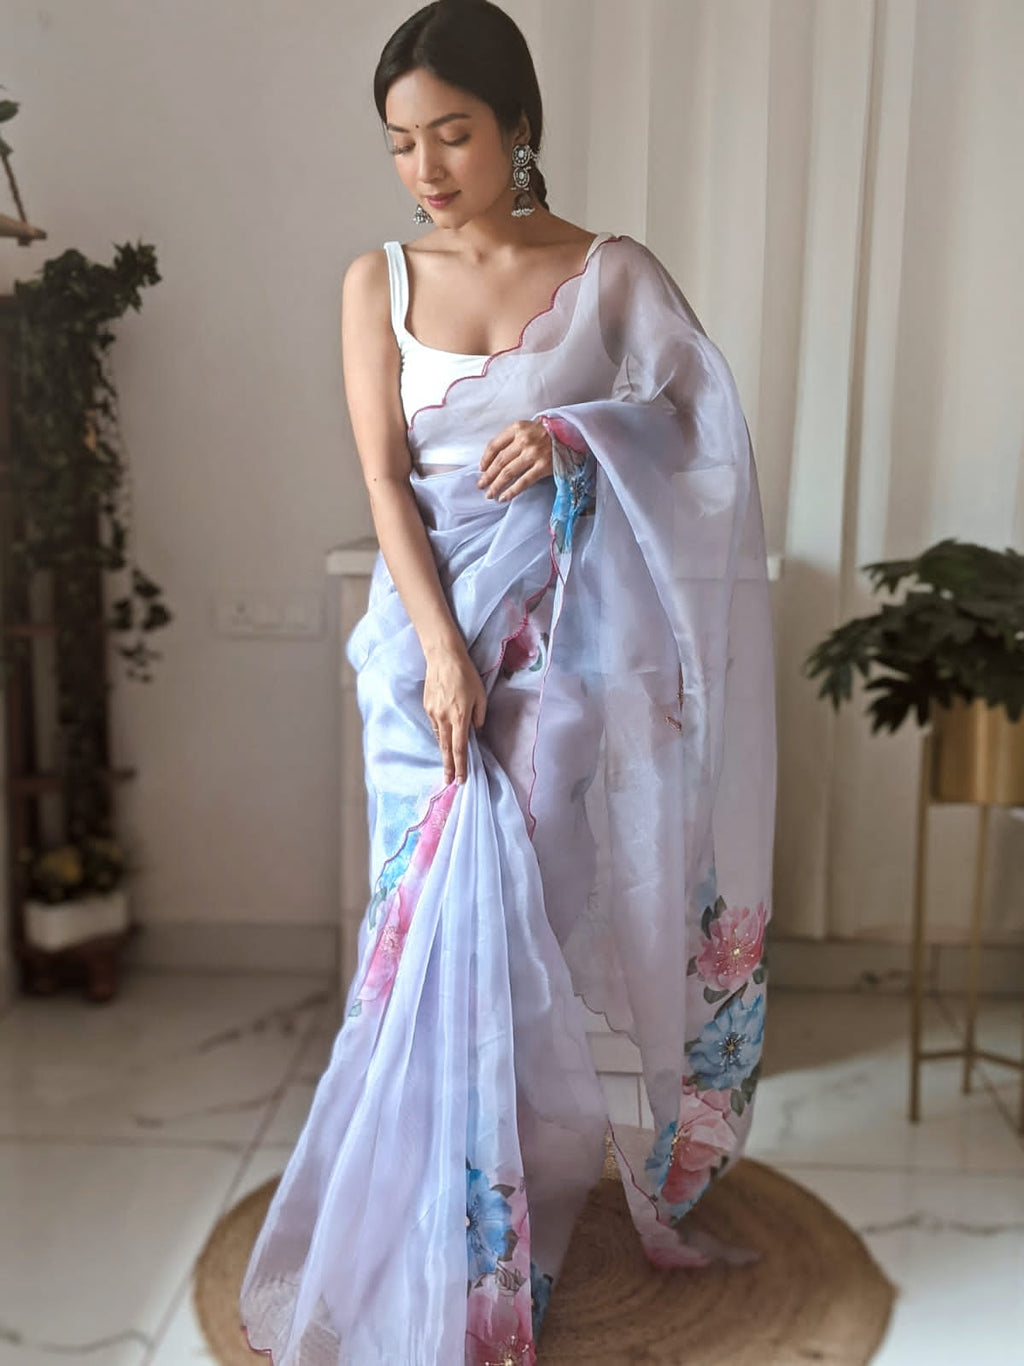 Lavender Organza Saree With Digital Print Work Online Shopping